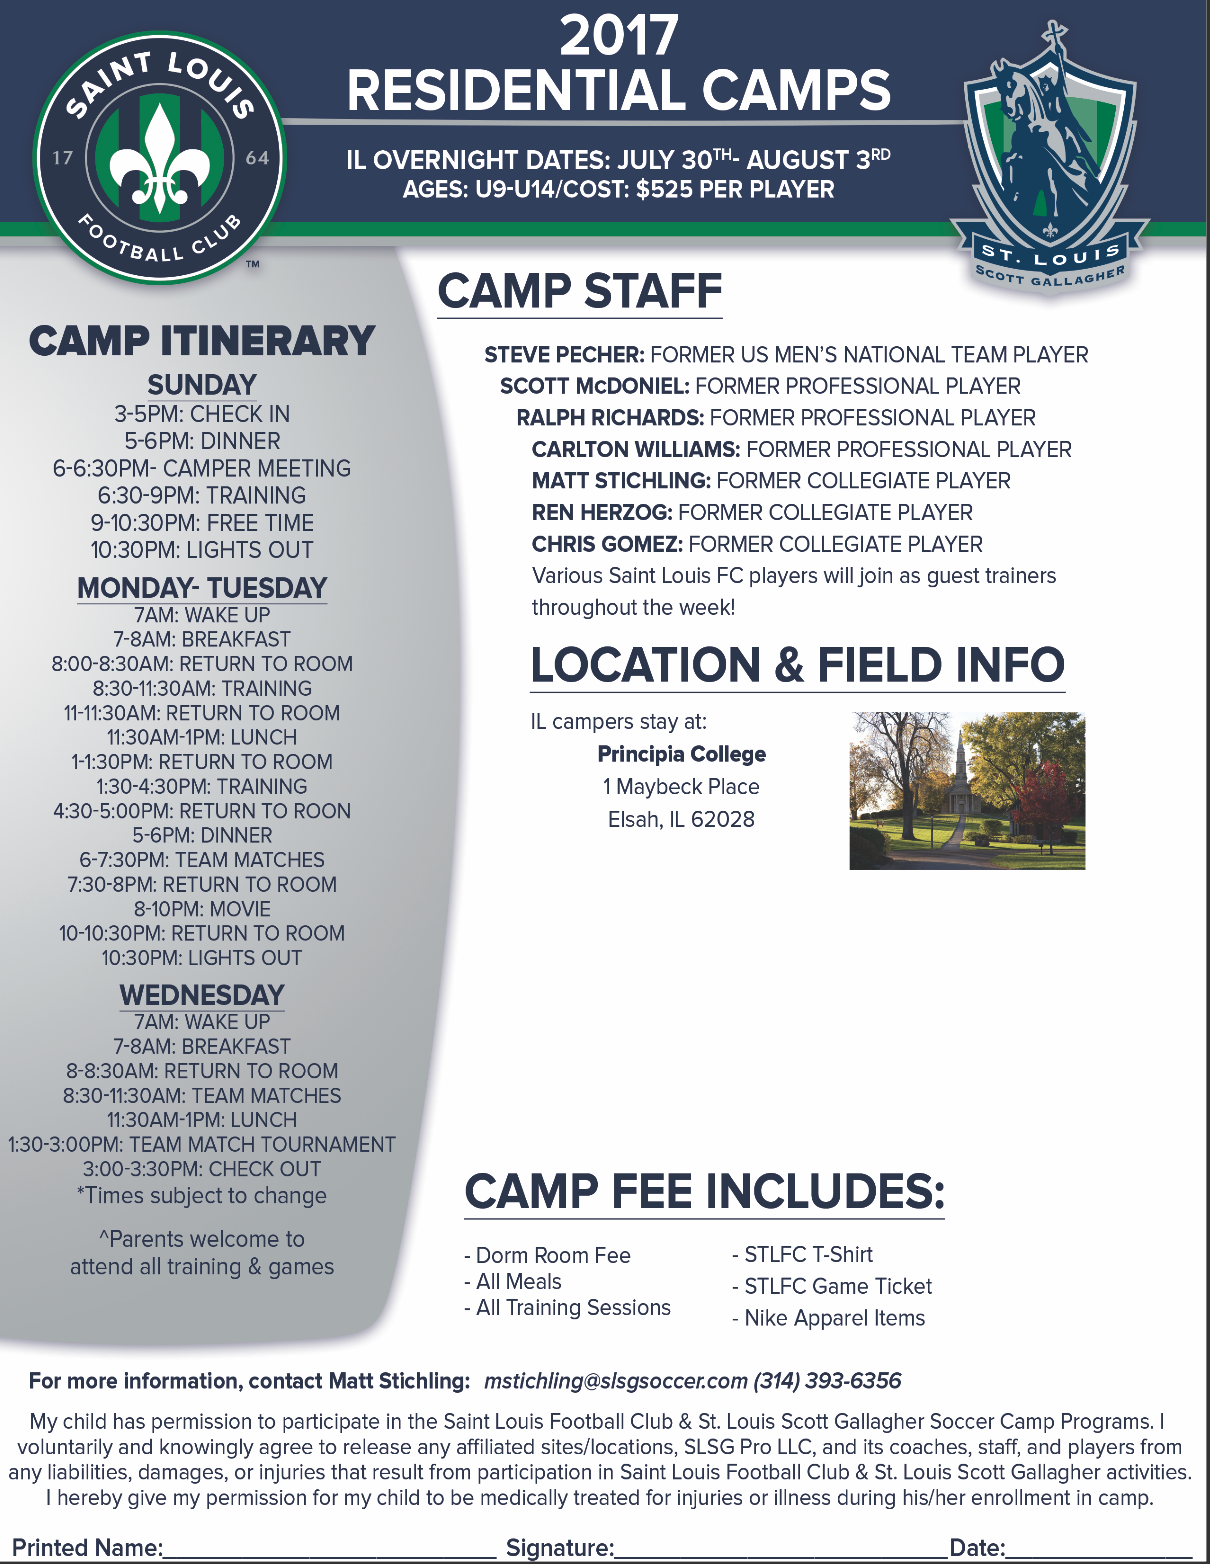 SLSG IL - Overnight Camps Flyers